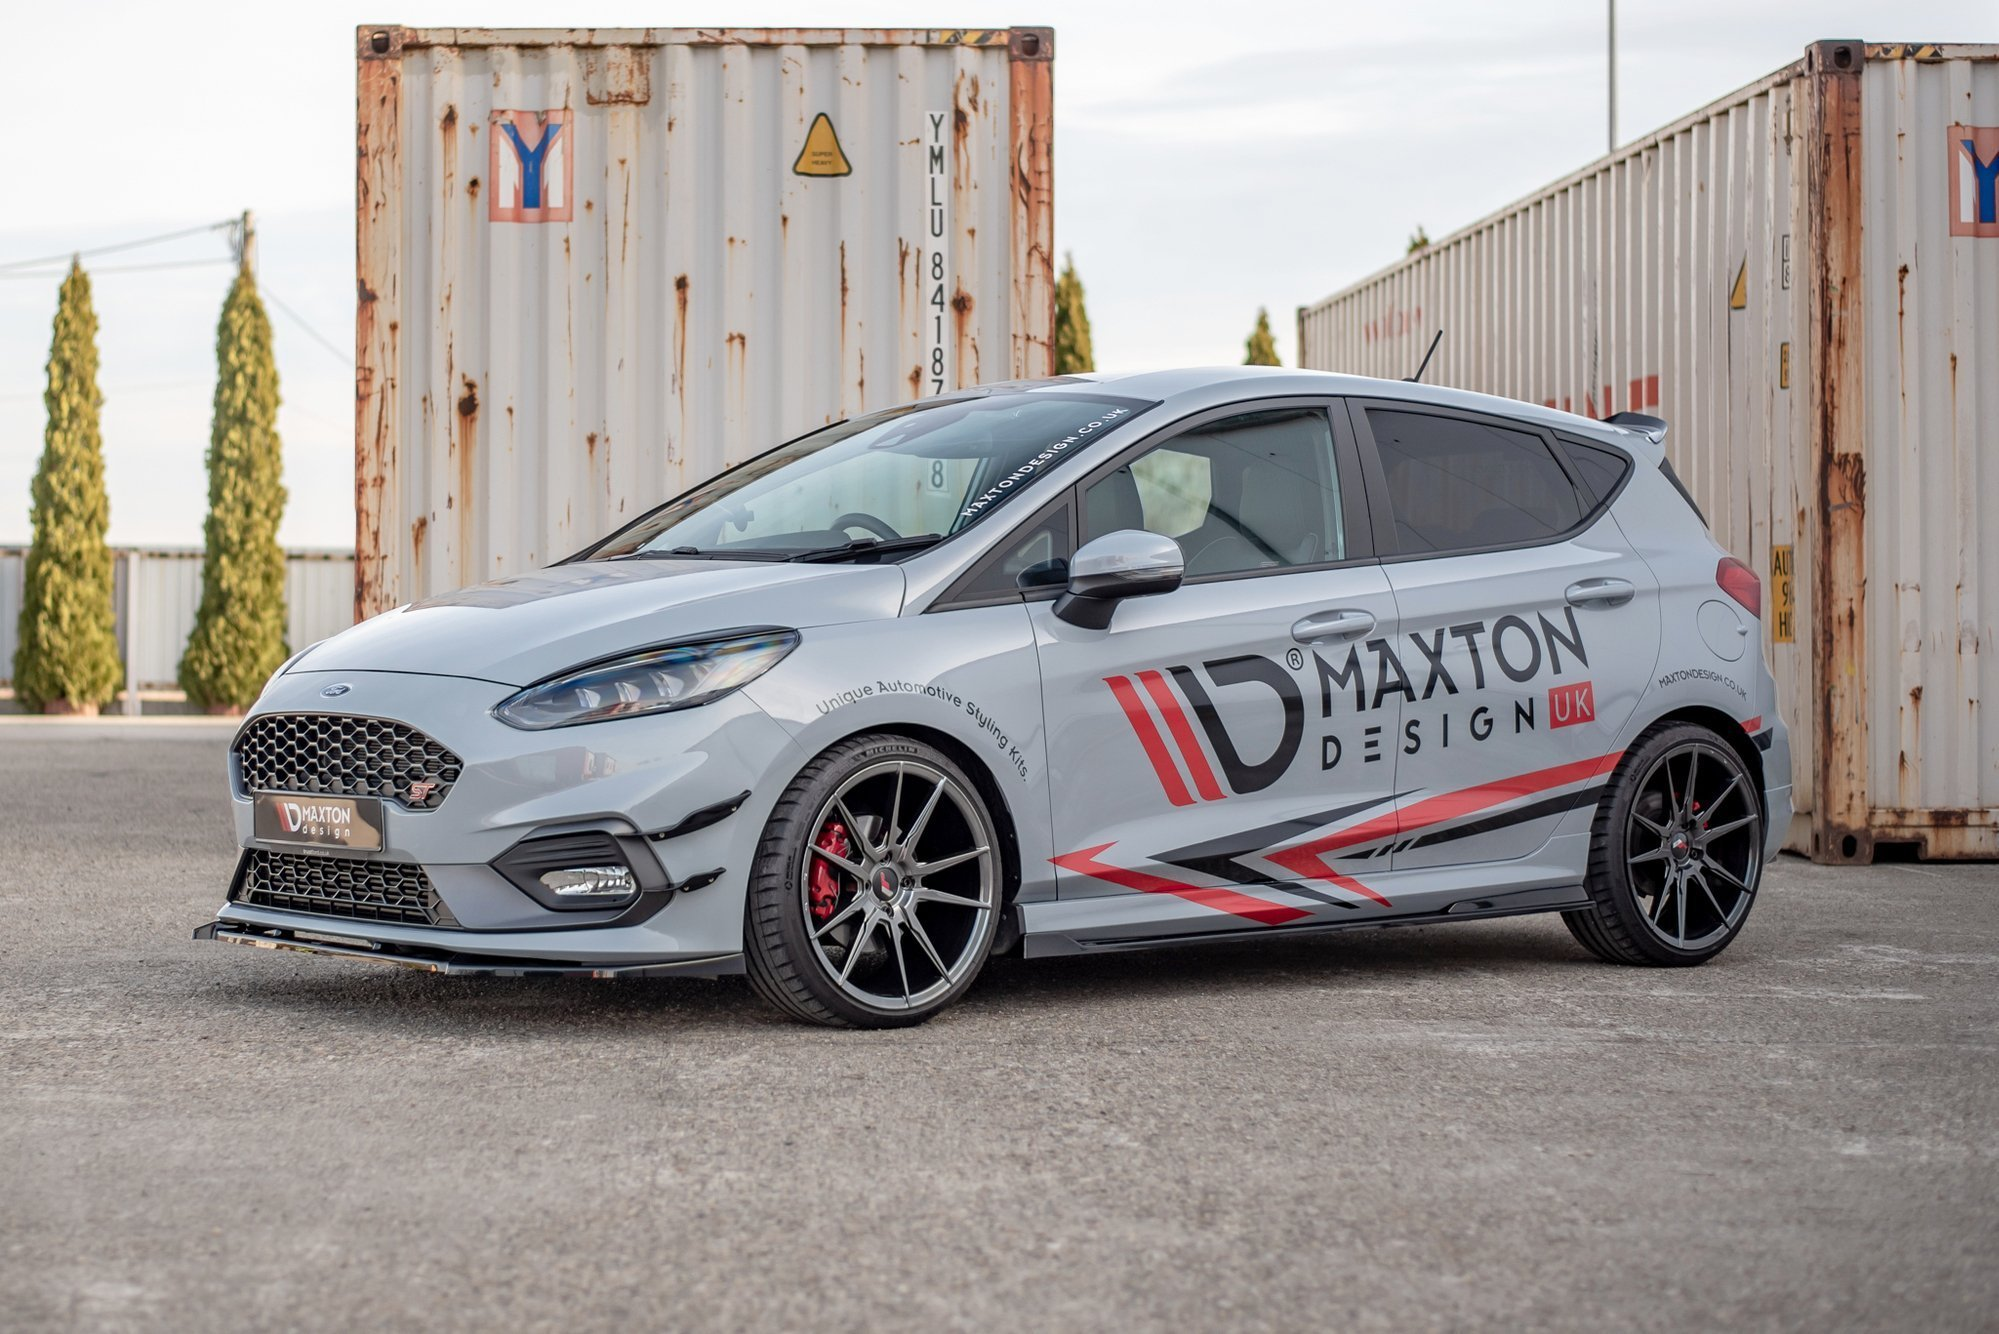 Side Skirts Diffusers V 3 Ford Fiesta Mk8 St St Line Our Offer Ford Fiesta St Mk8 2018 Our Offer Ford Fiesta St Line Mk8 2017 Maxton Design